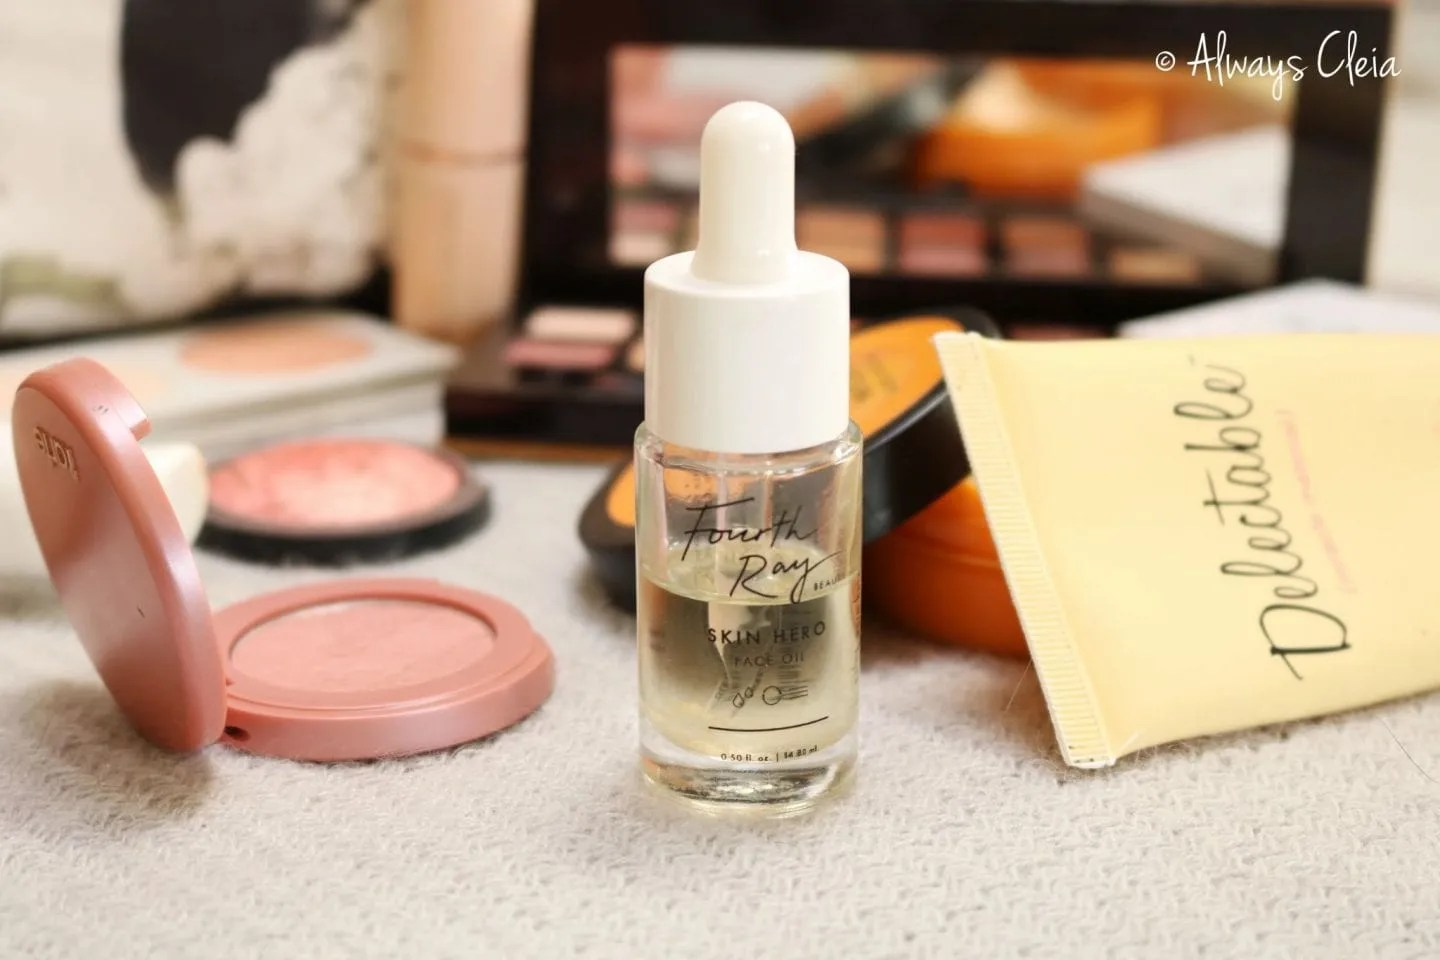 Fourth Ray Beauty Skin Hero Oil